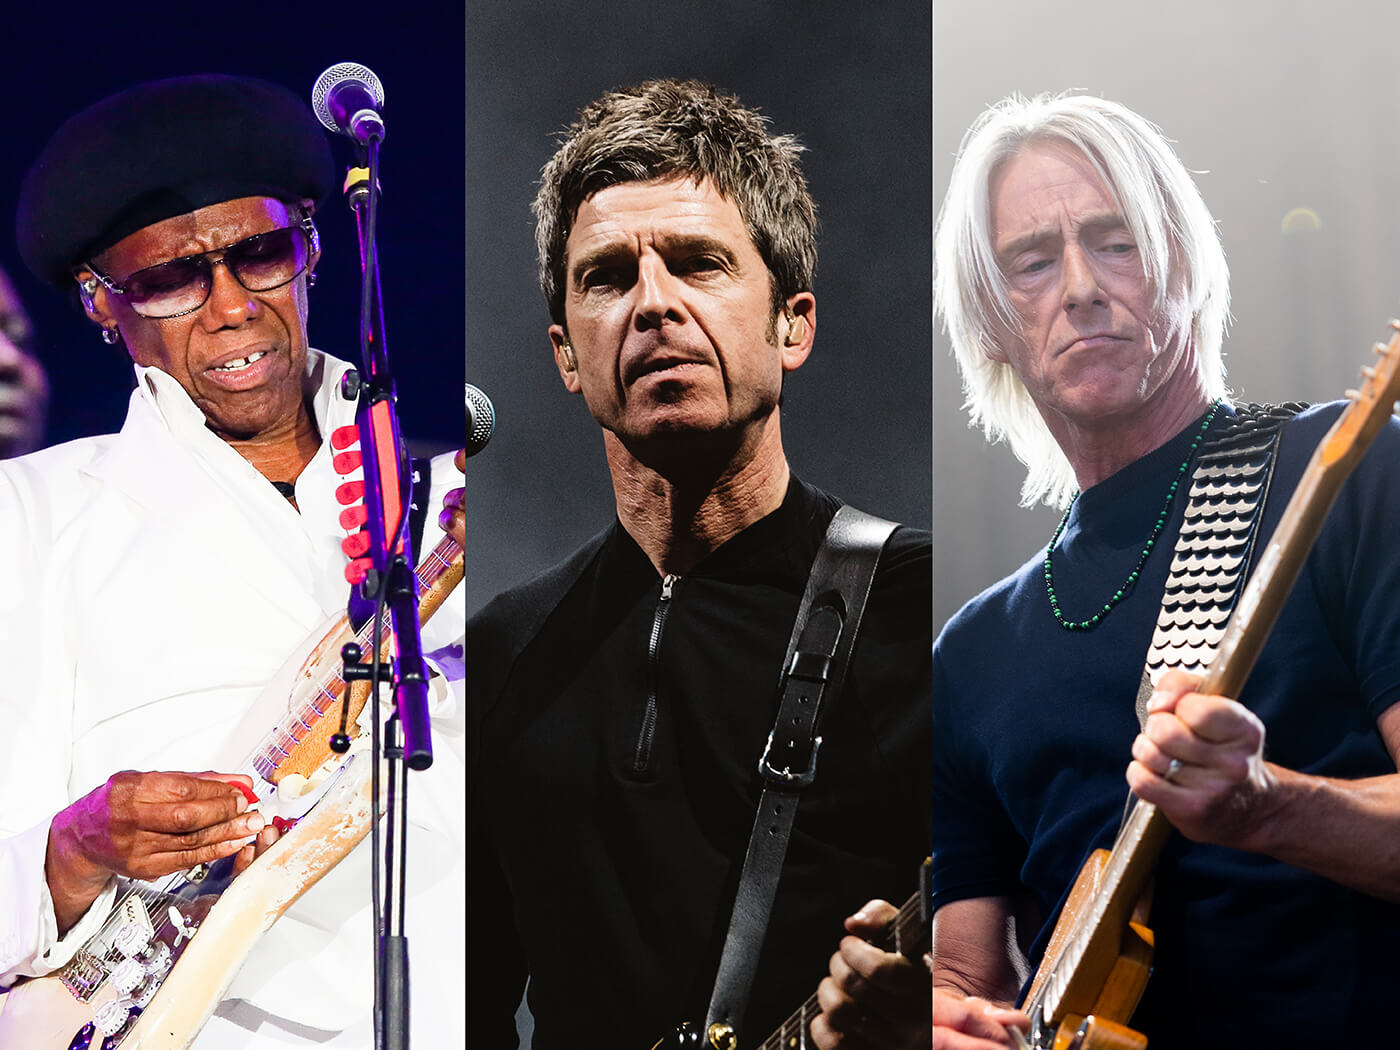 Paul Weller, Noel Gallagher and Chic for Teenage Cancer Trust shows - UNCUT